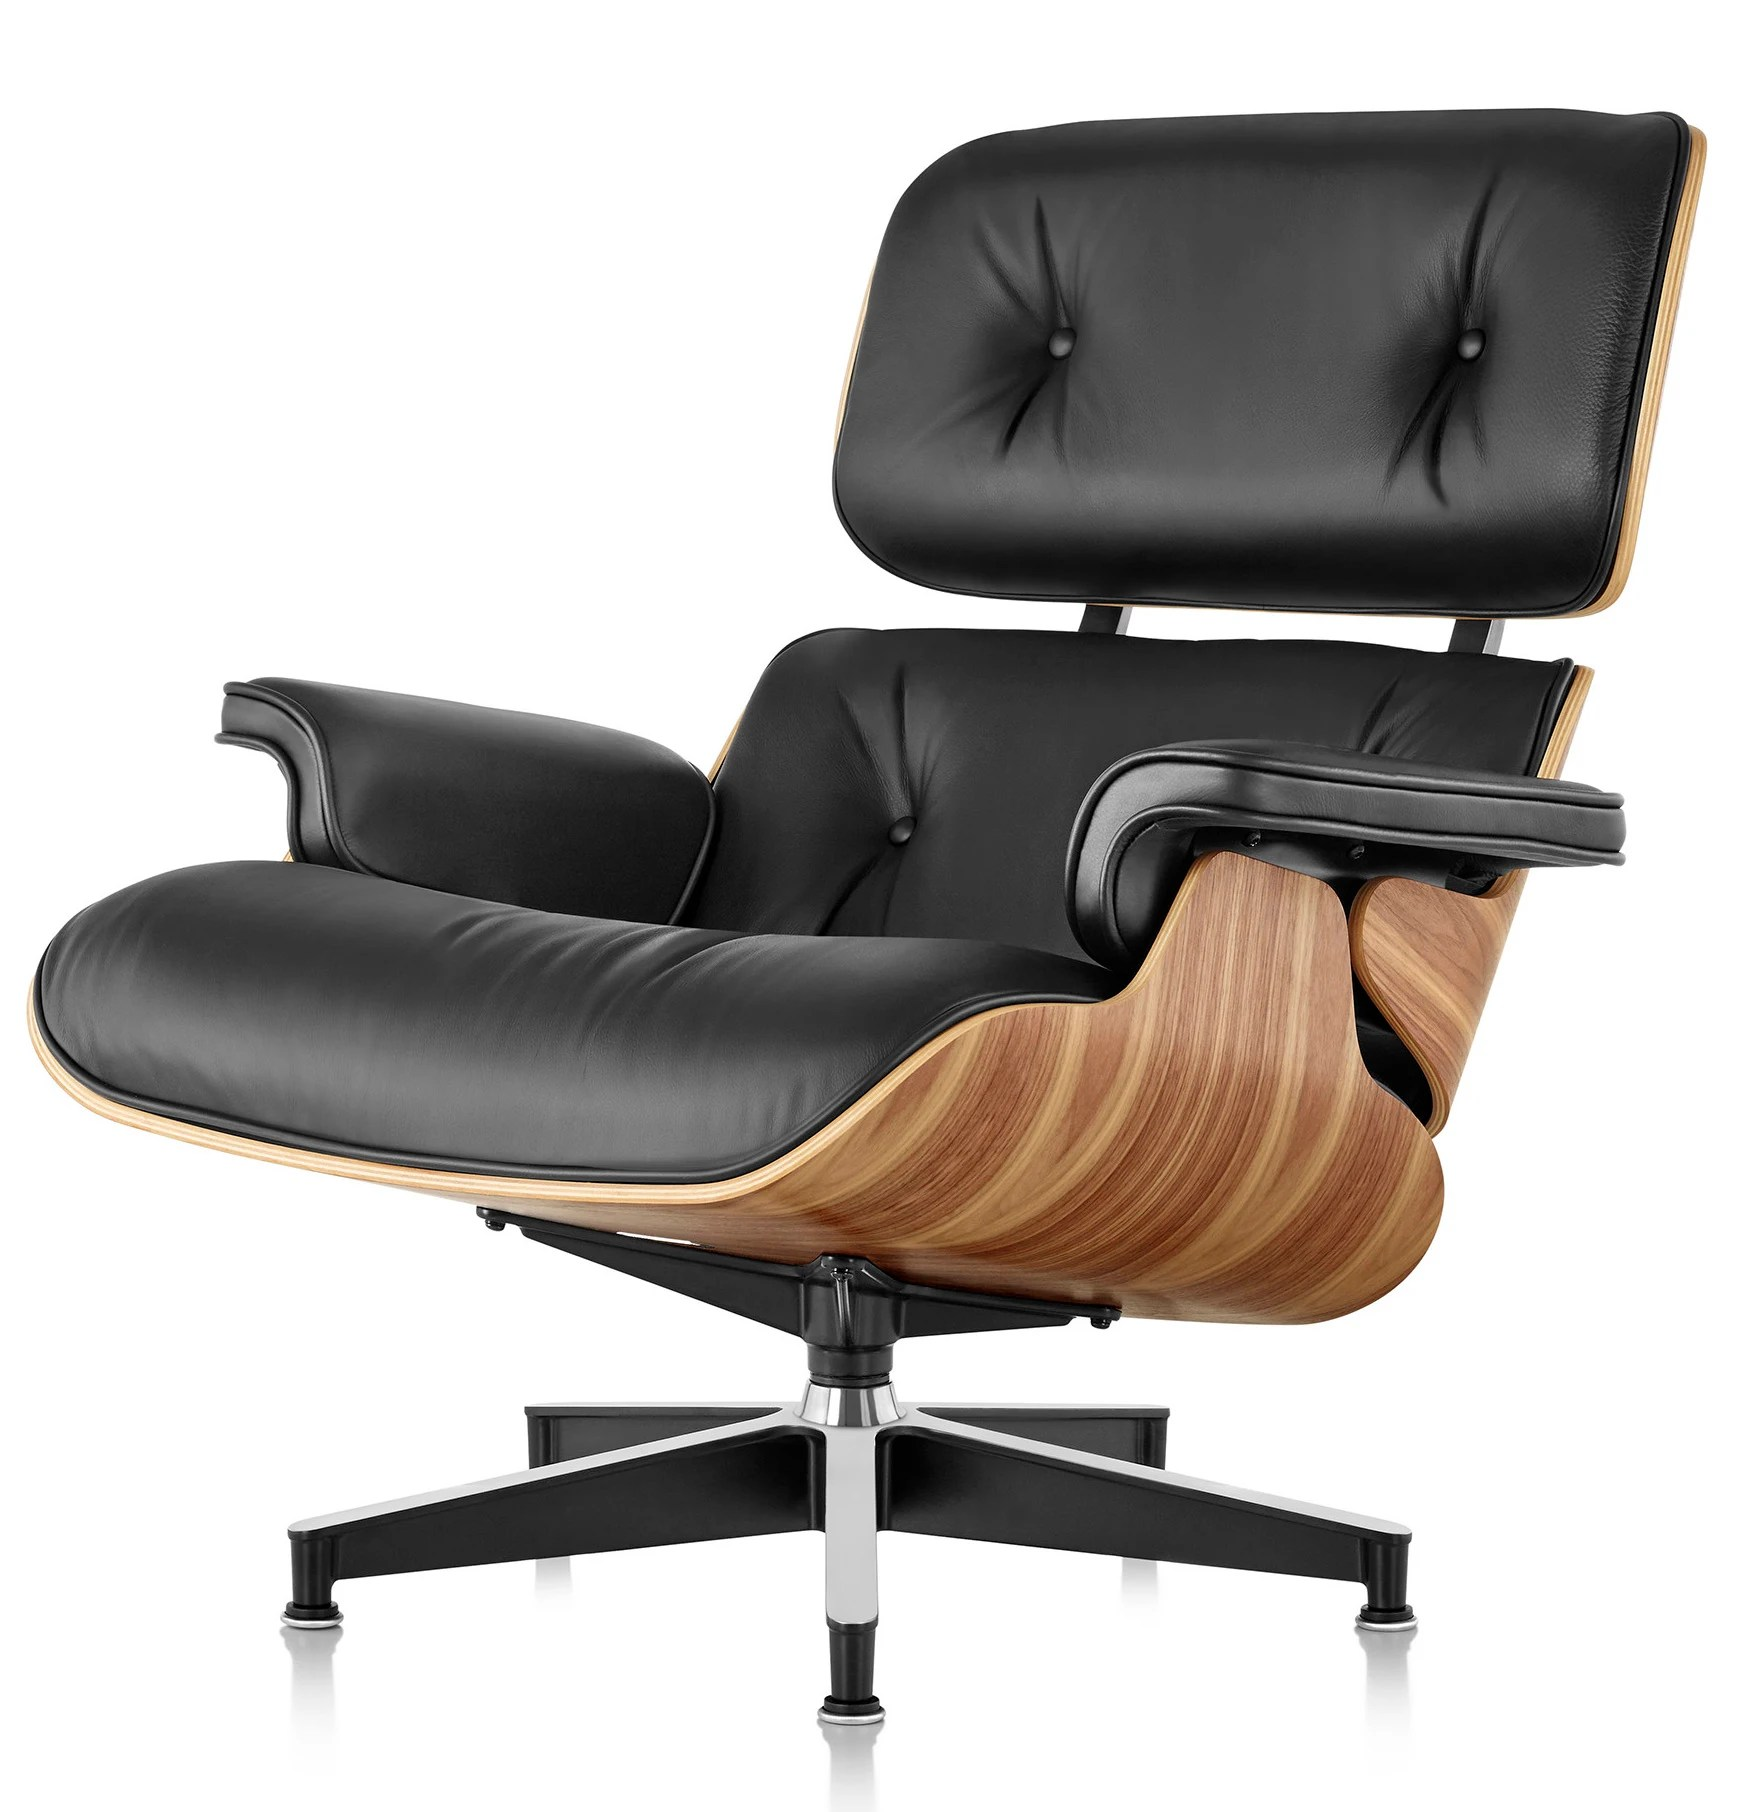 Eames Lounge Herman Miller Eames® Lounge Chair - Gr Shop Canada